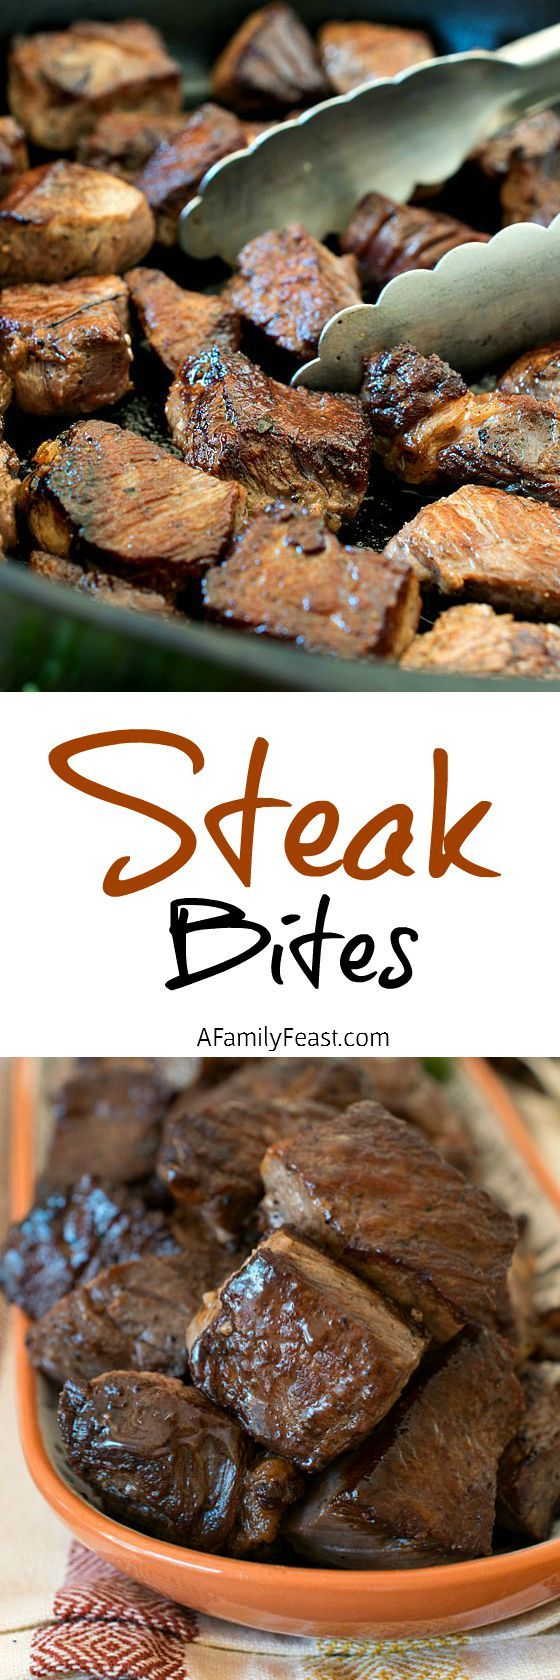 Steak Bites - Super delicious and easy to prepare - our Steak Bites are a great weeknight meal that the entire family will love!